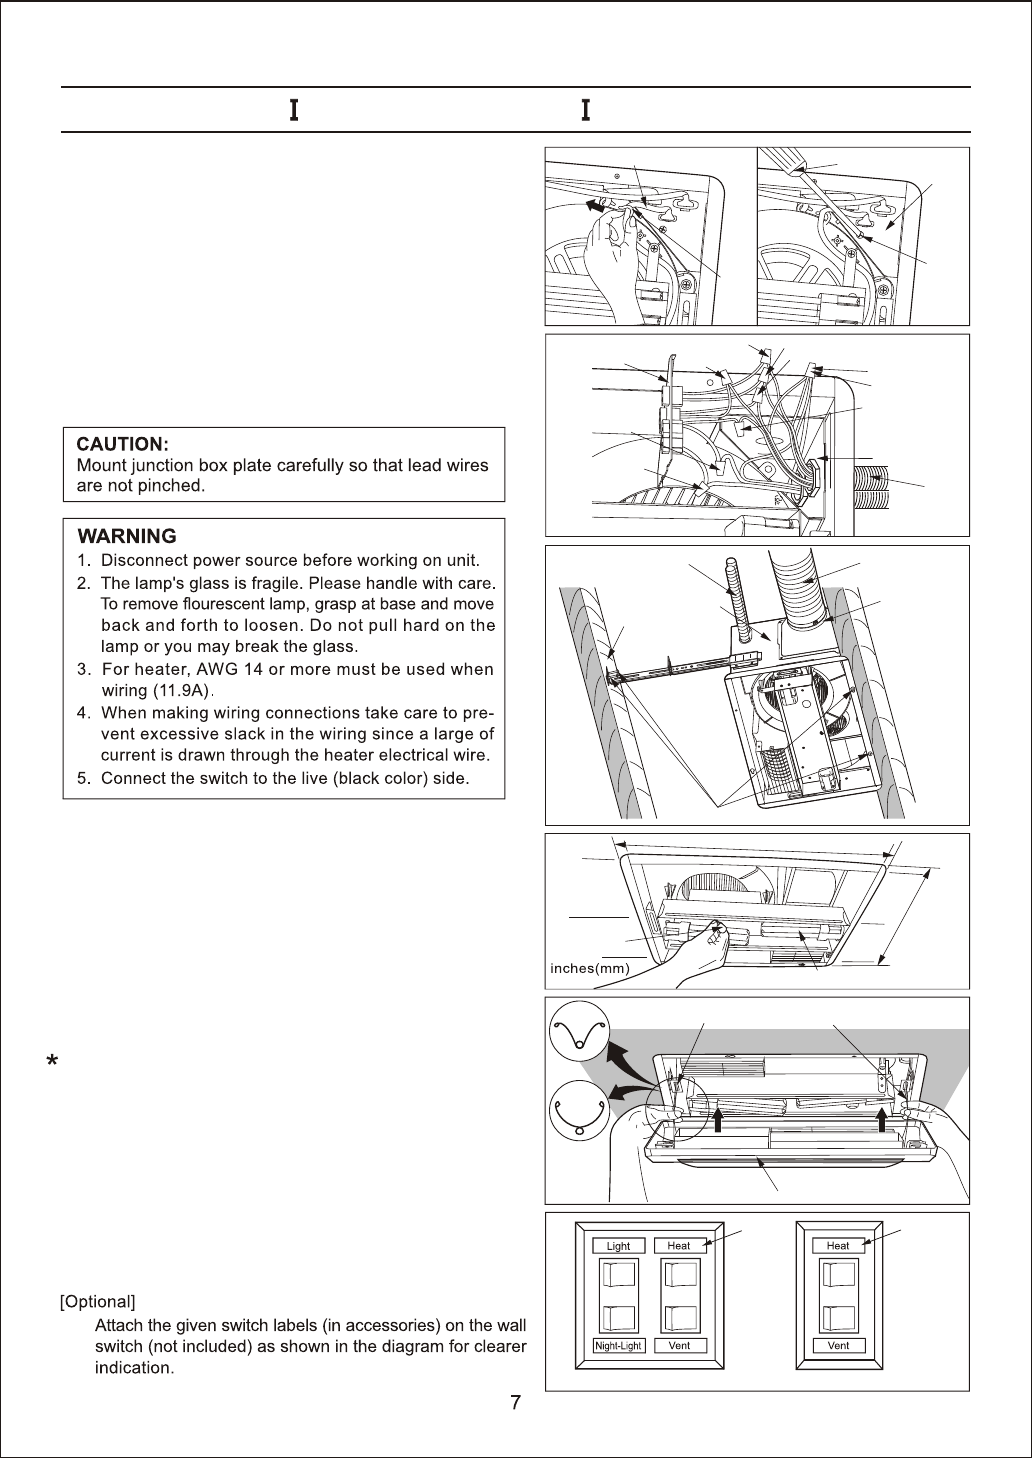 d437911b 977e aab4 6de8 06c85a9ea1c8 bg7 page 7 of panasonic fan fv 11vhl2 user guide manualsonline com Panasonic Car Stereo Wiring Diagram at honlapkeszites.co